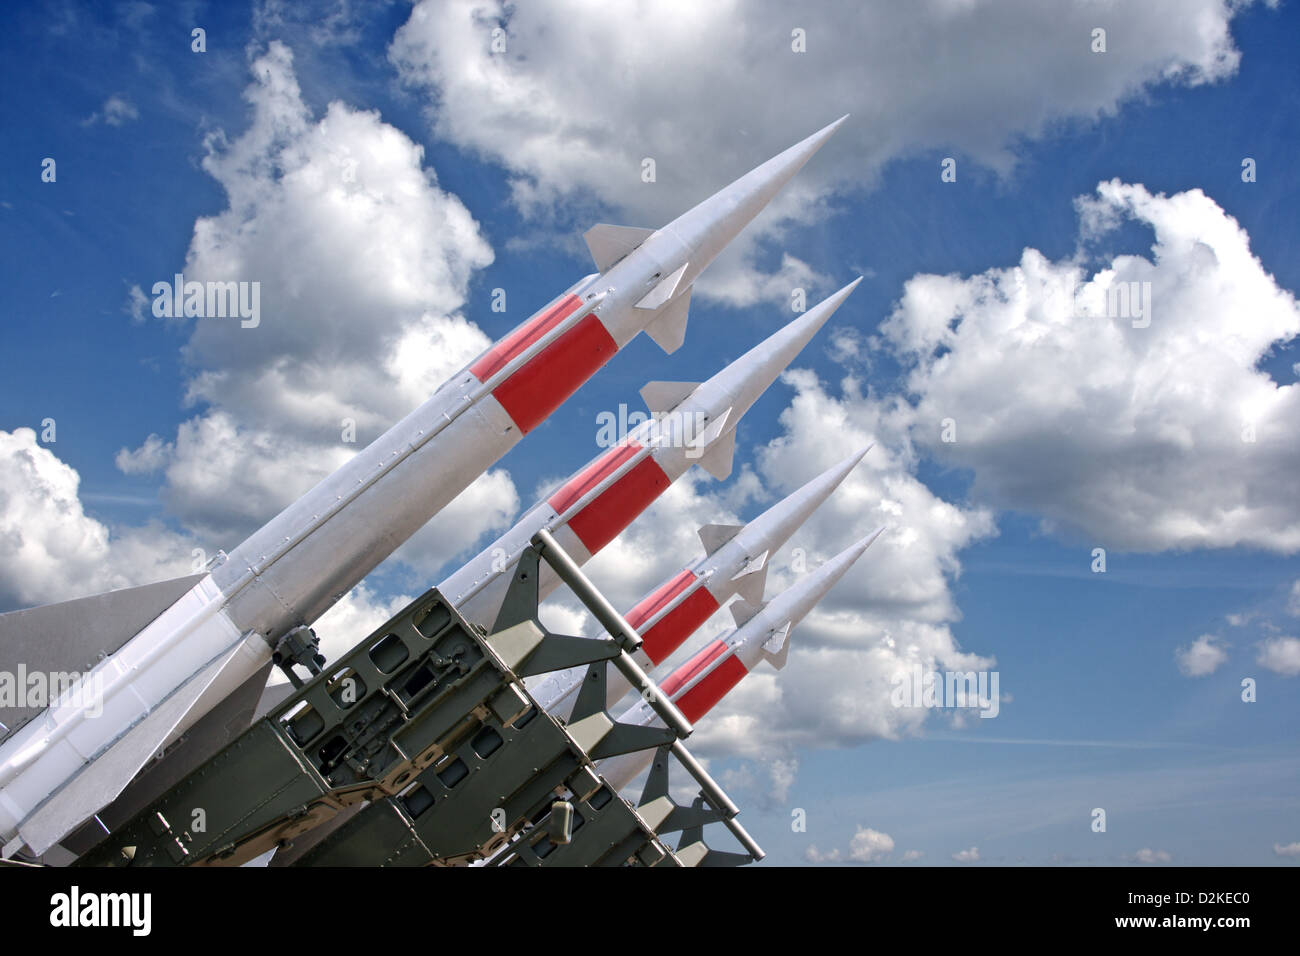 Four rockets of a surface-to-air missile system are aimed in the sky - Stock Image